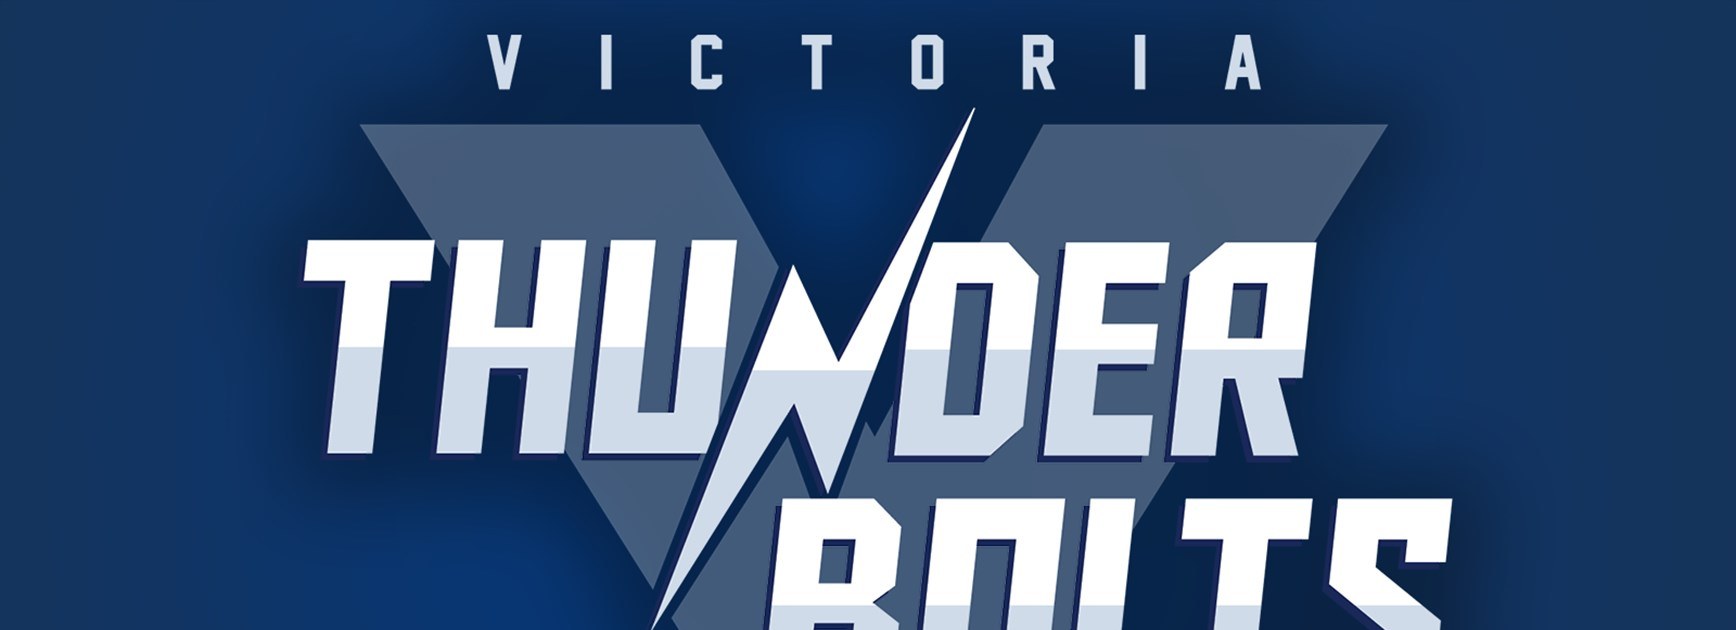 Victoria To Make Welcome Return To NSWRL